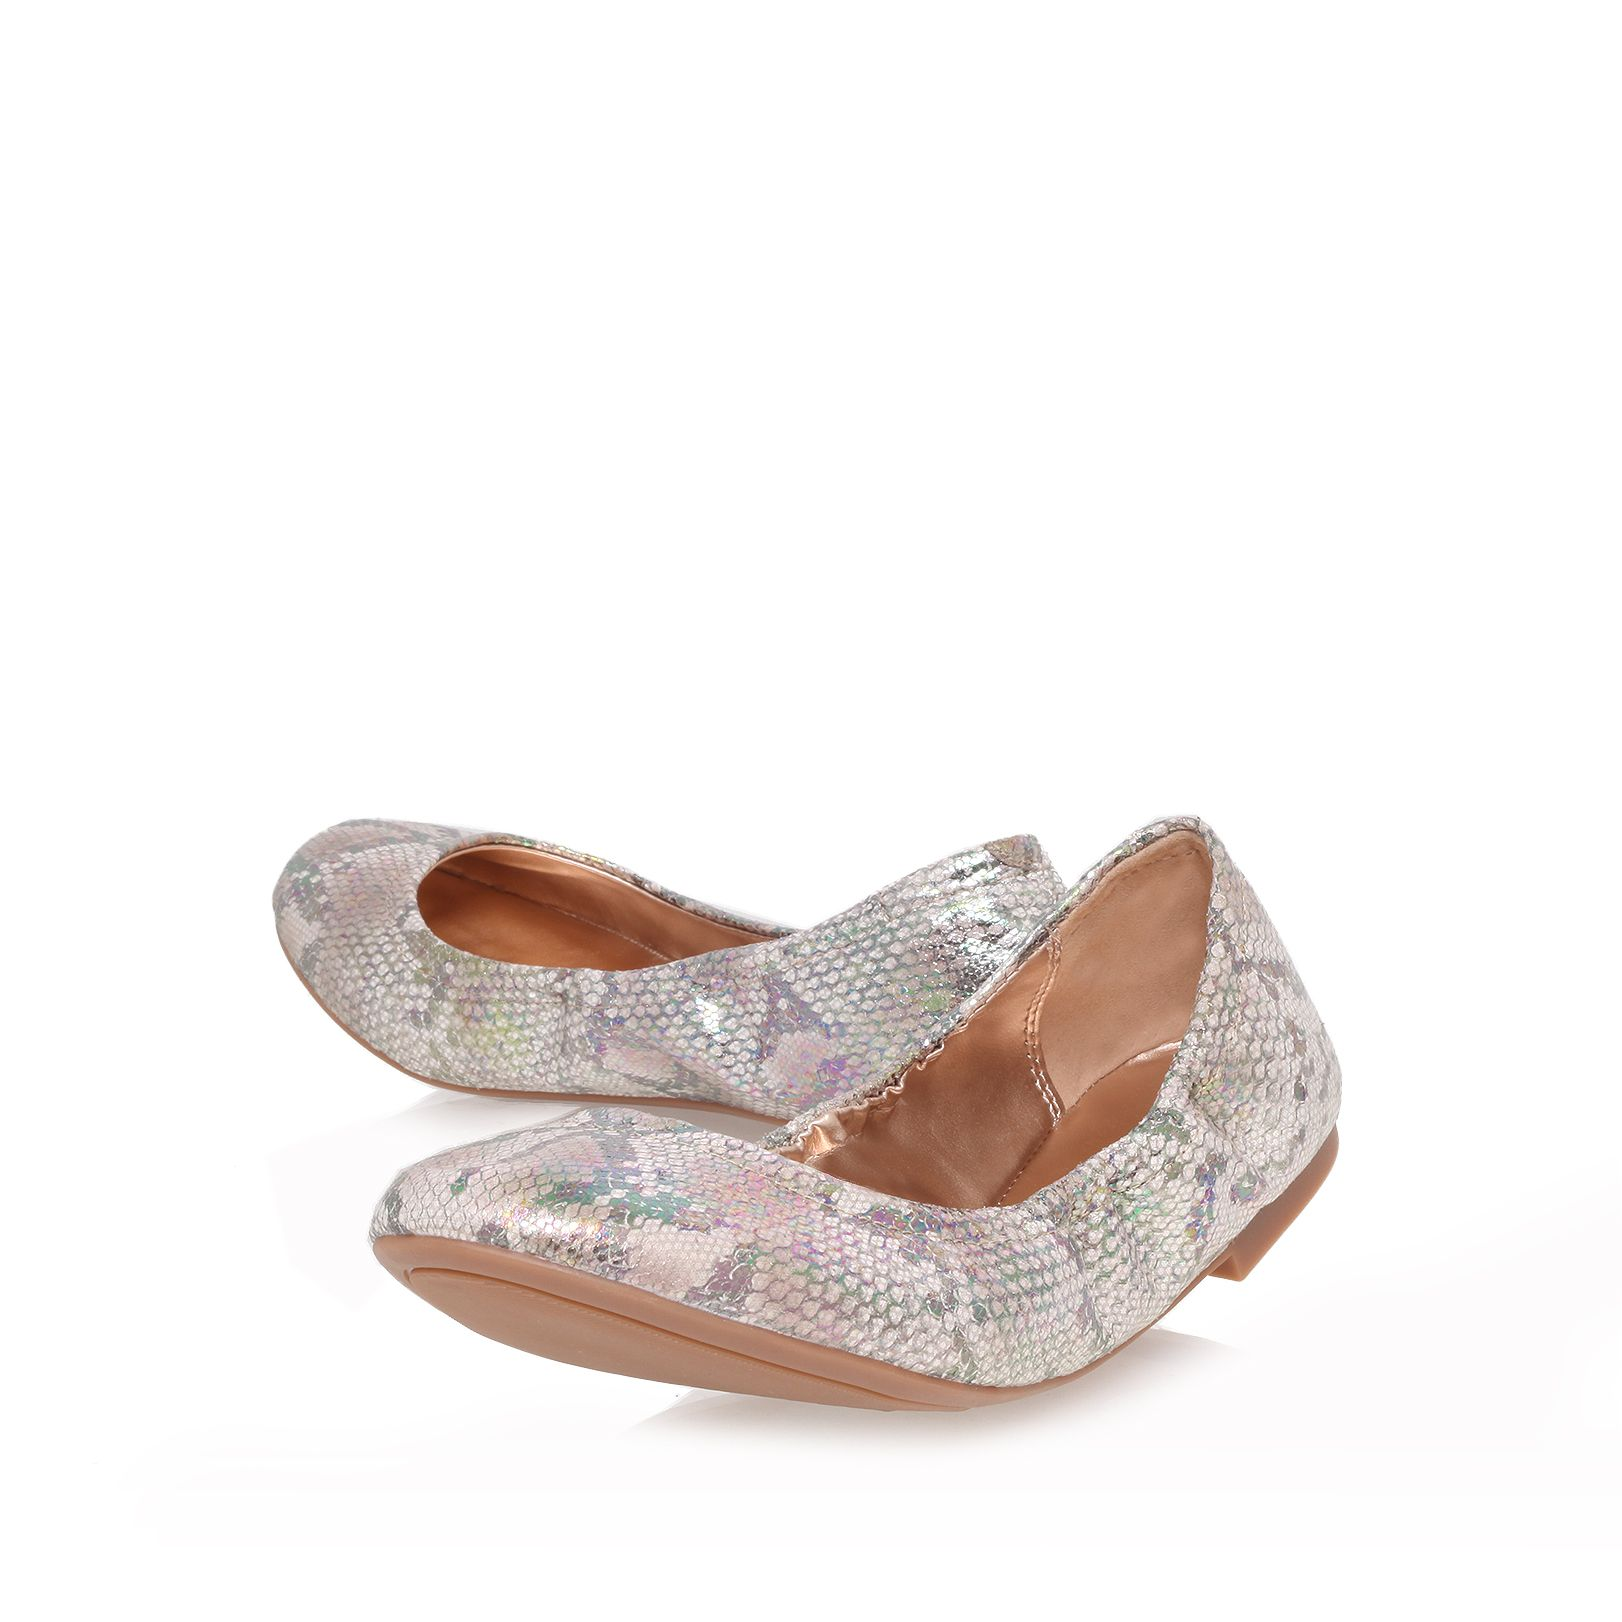 Andheart3 flat shoes